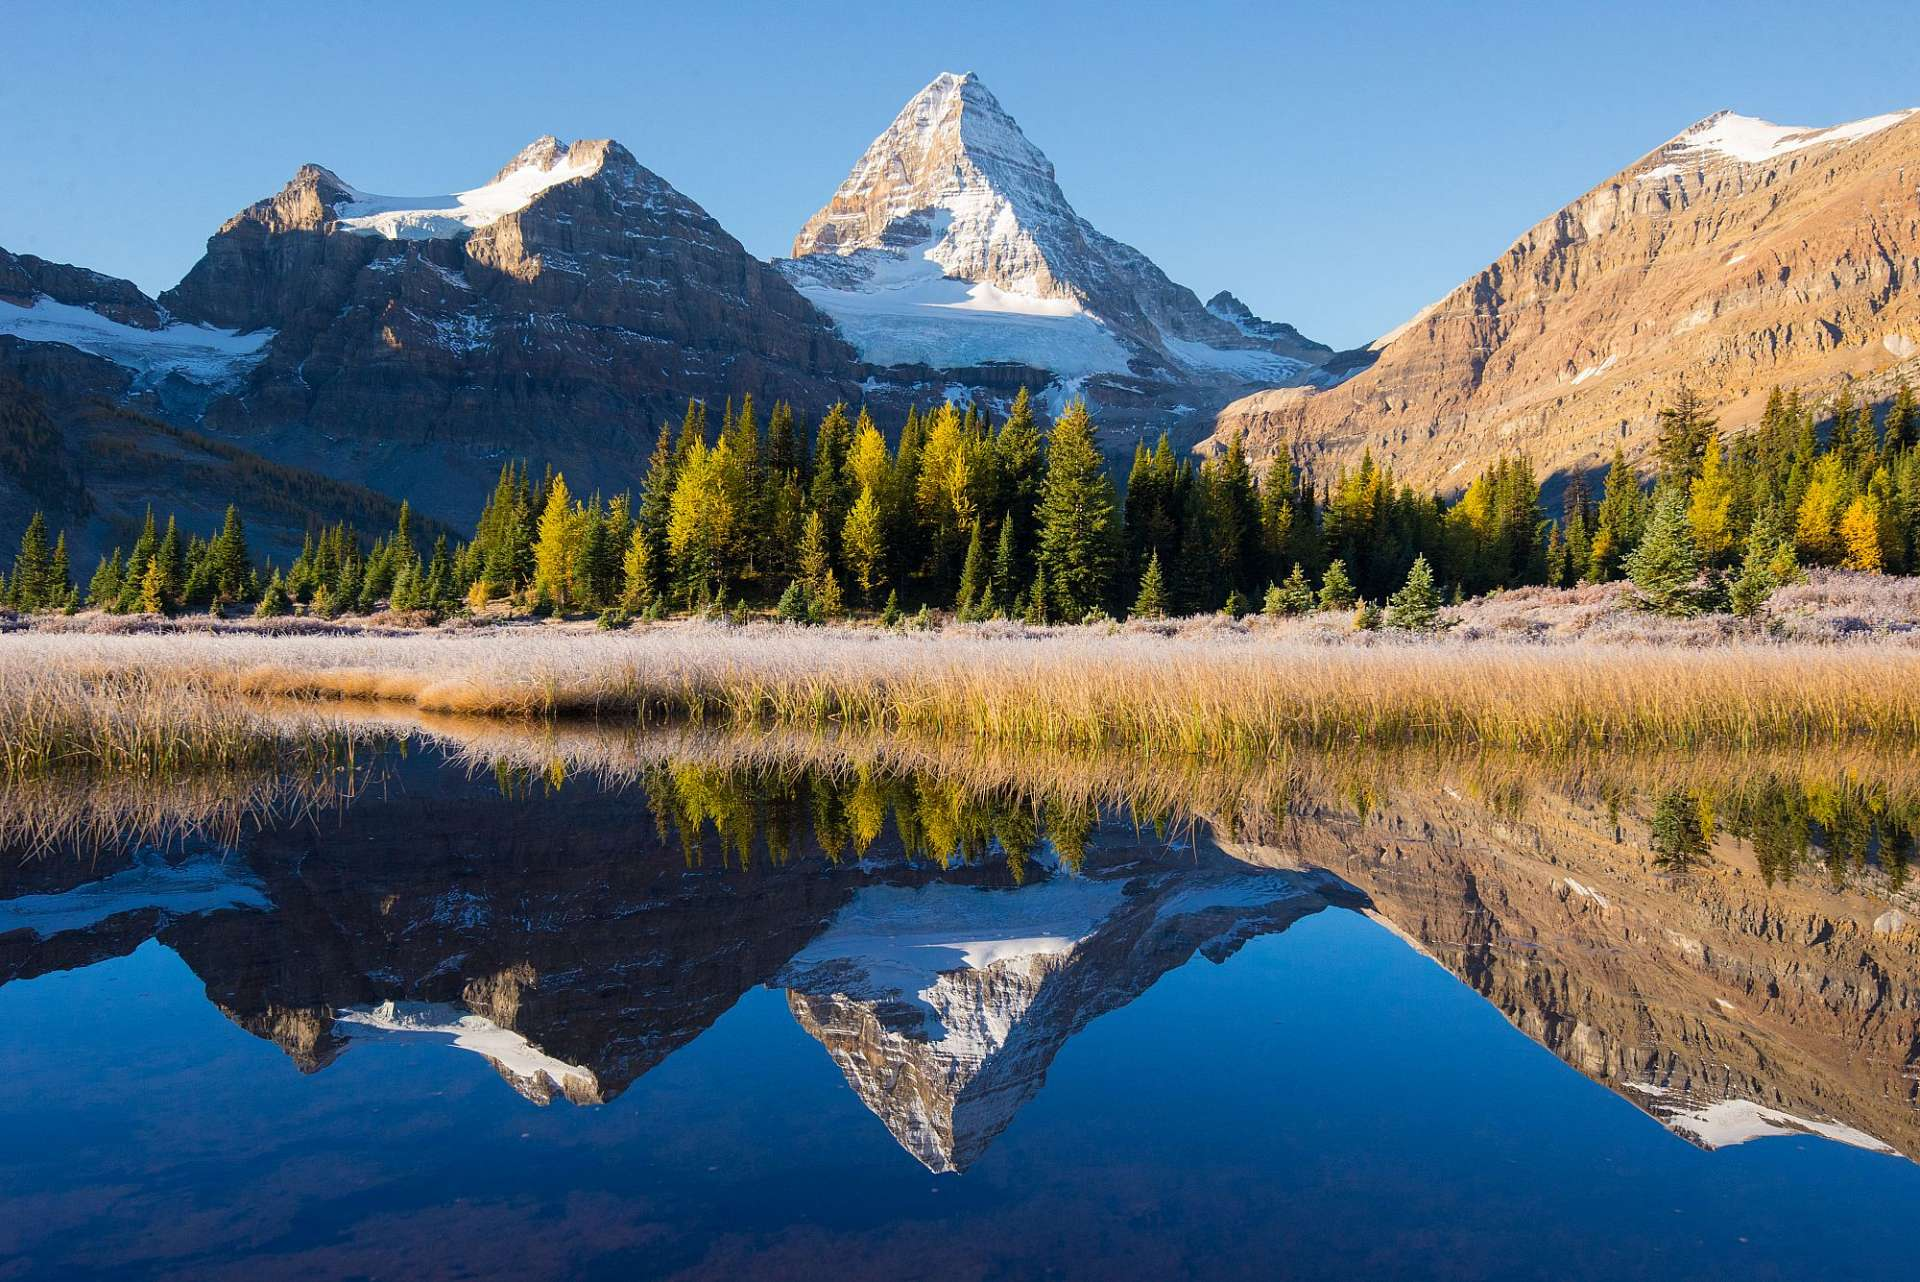 Welterbe der UNESCO: Kanadische Rocky Mountains